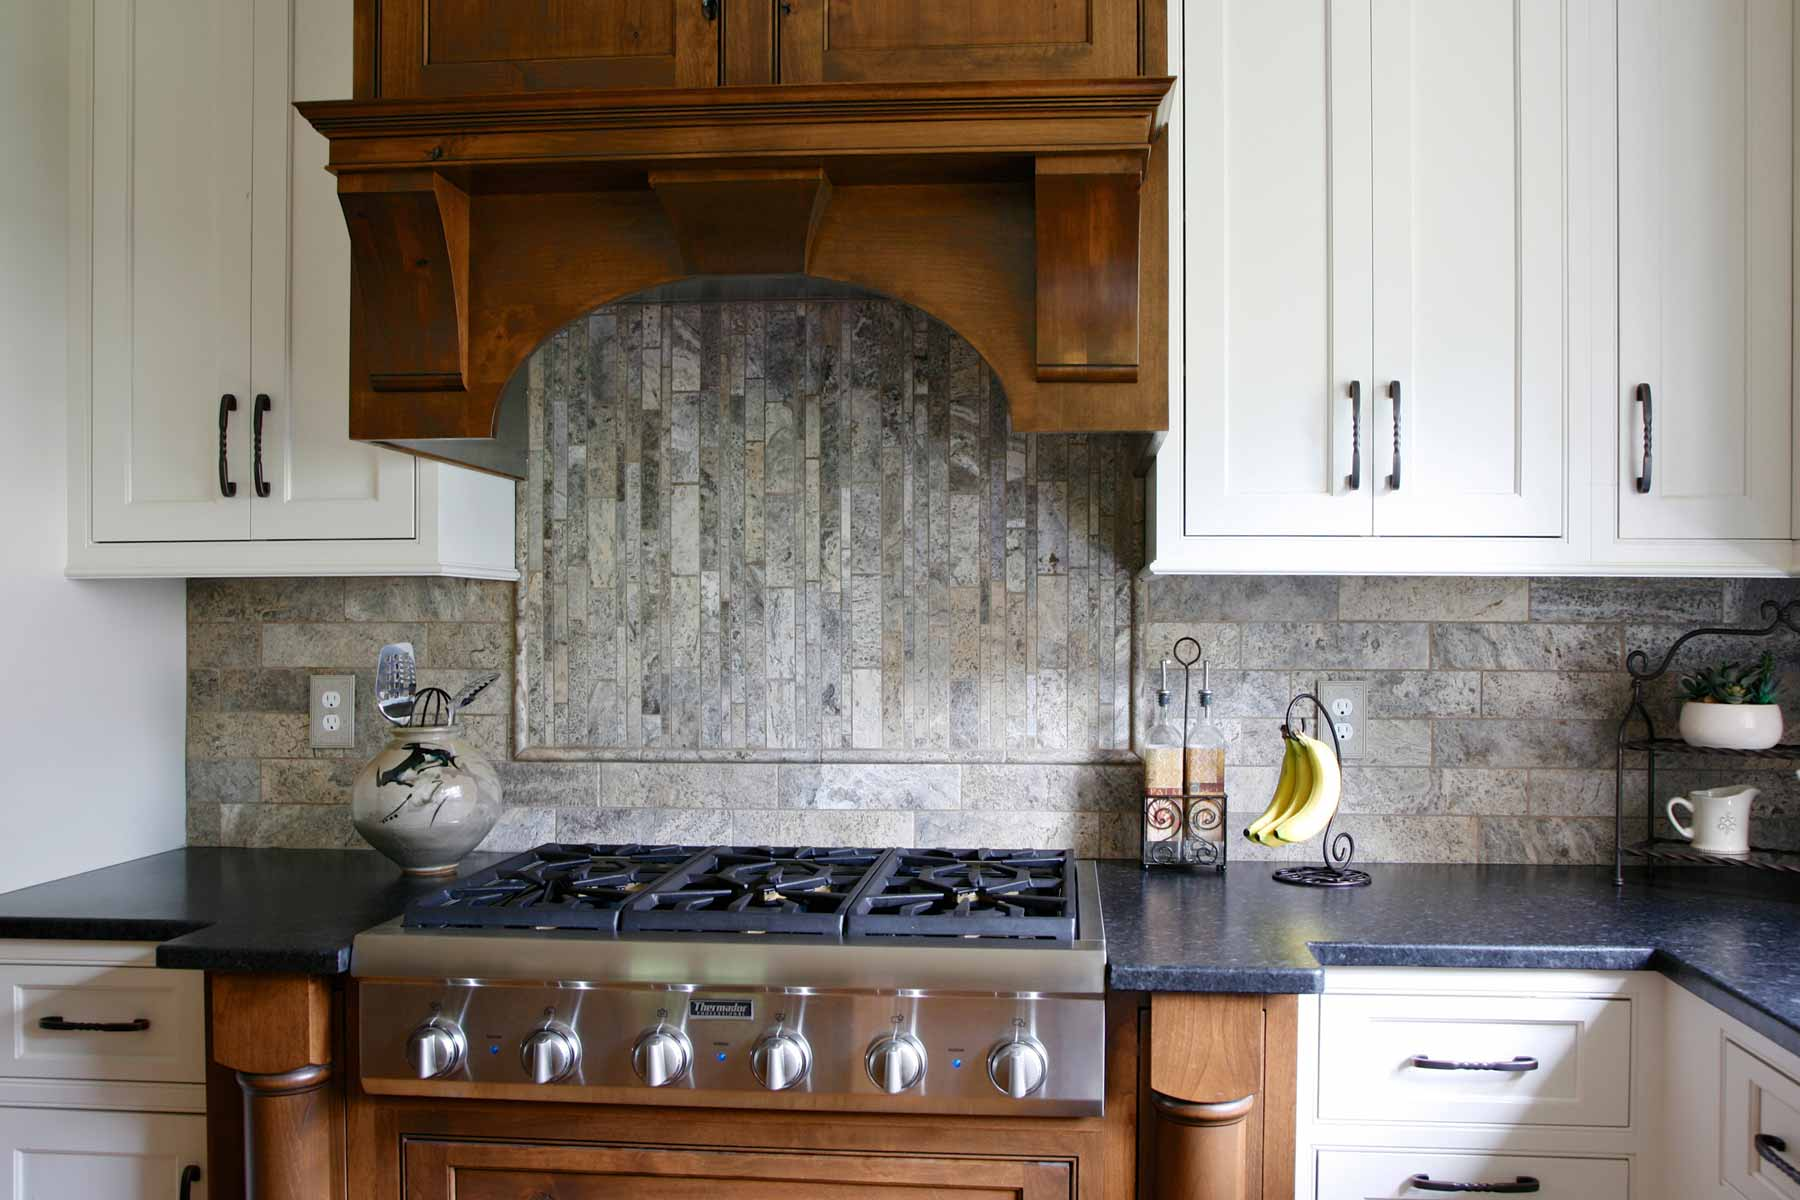 Stone tile backsplash was used in this kitchen remodel